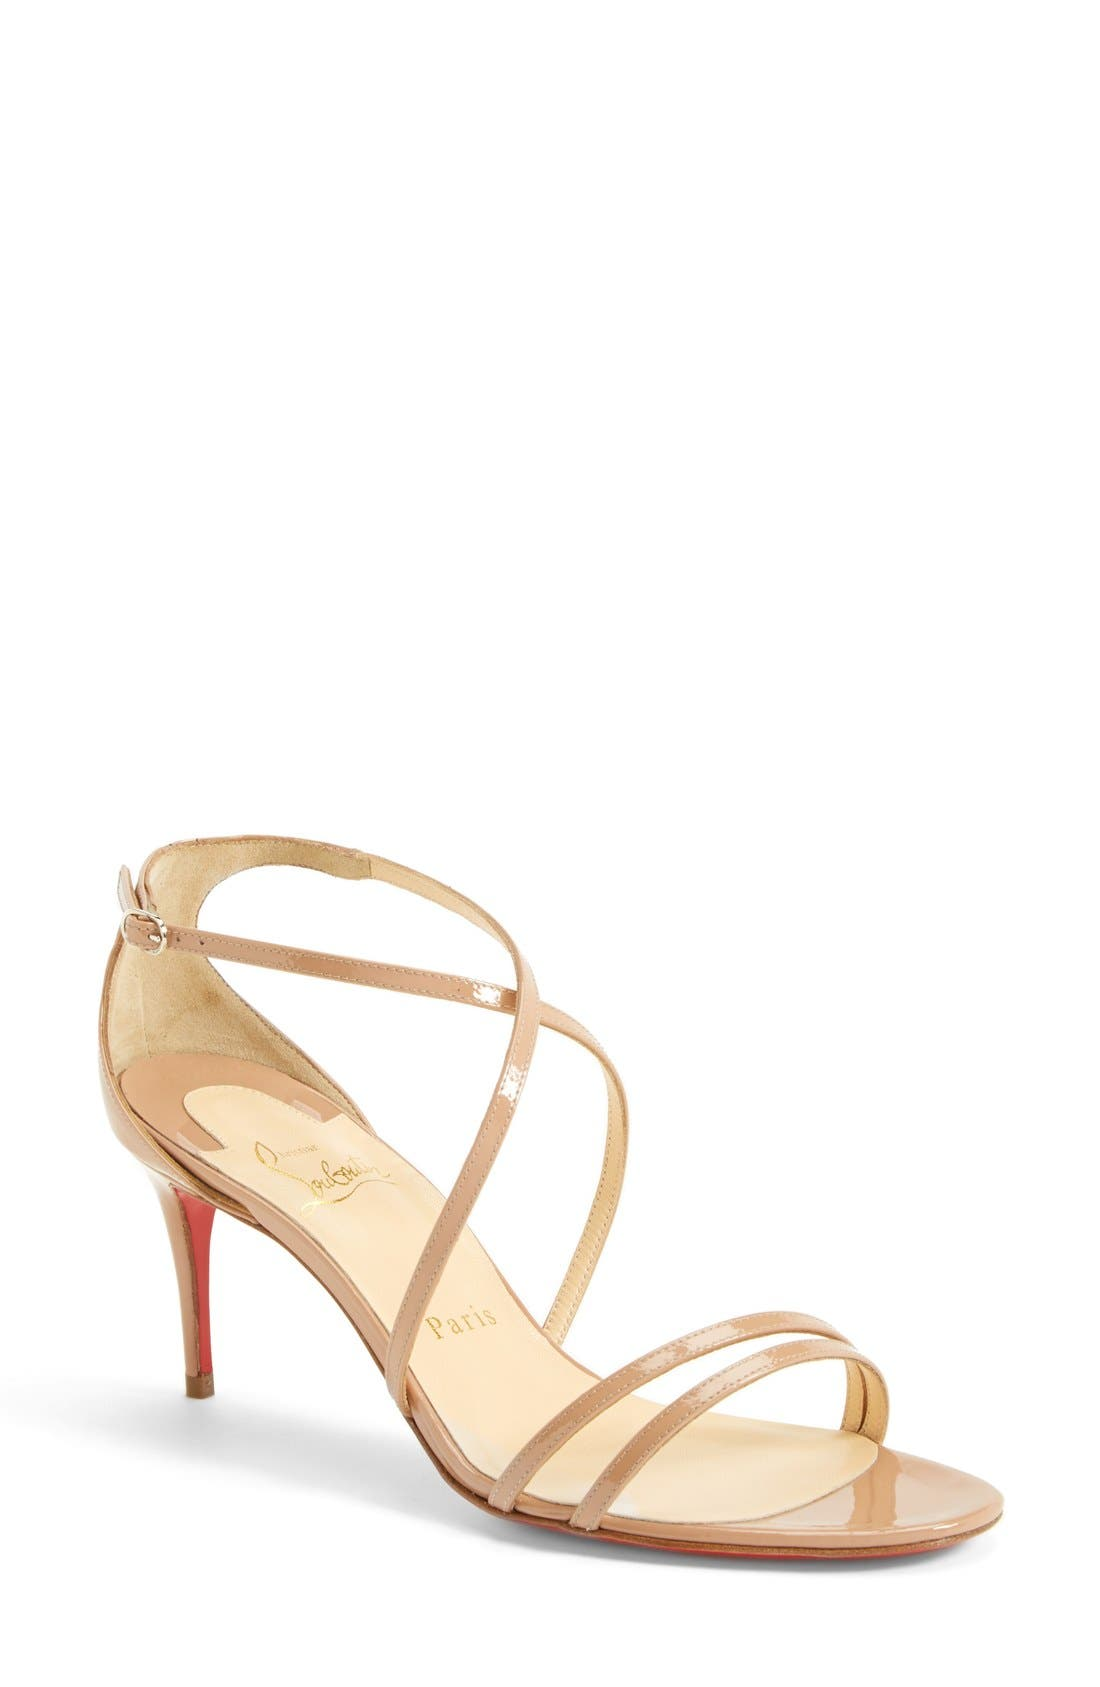 Alternate Image 1 Selected - Christian Louboutin 'Gwinee' Sandal